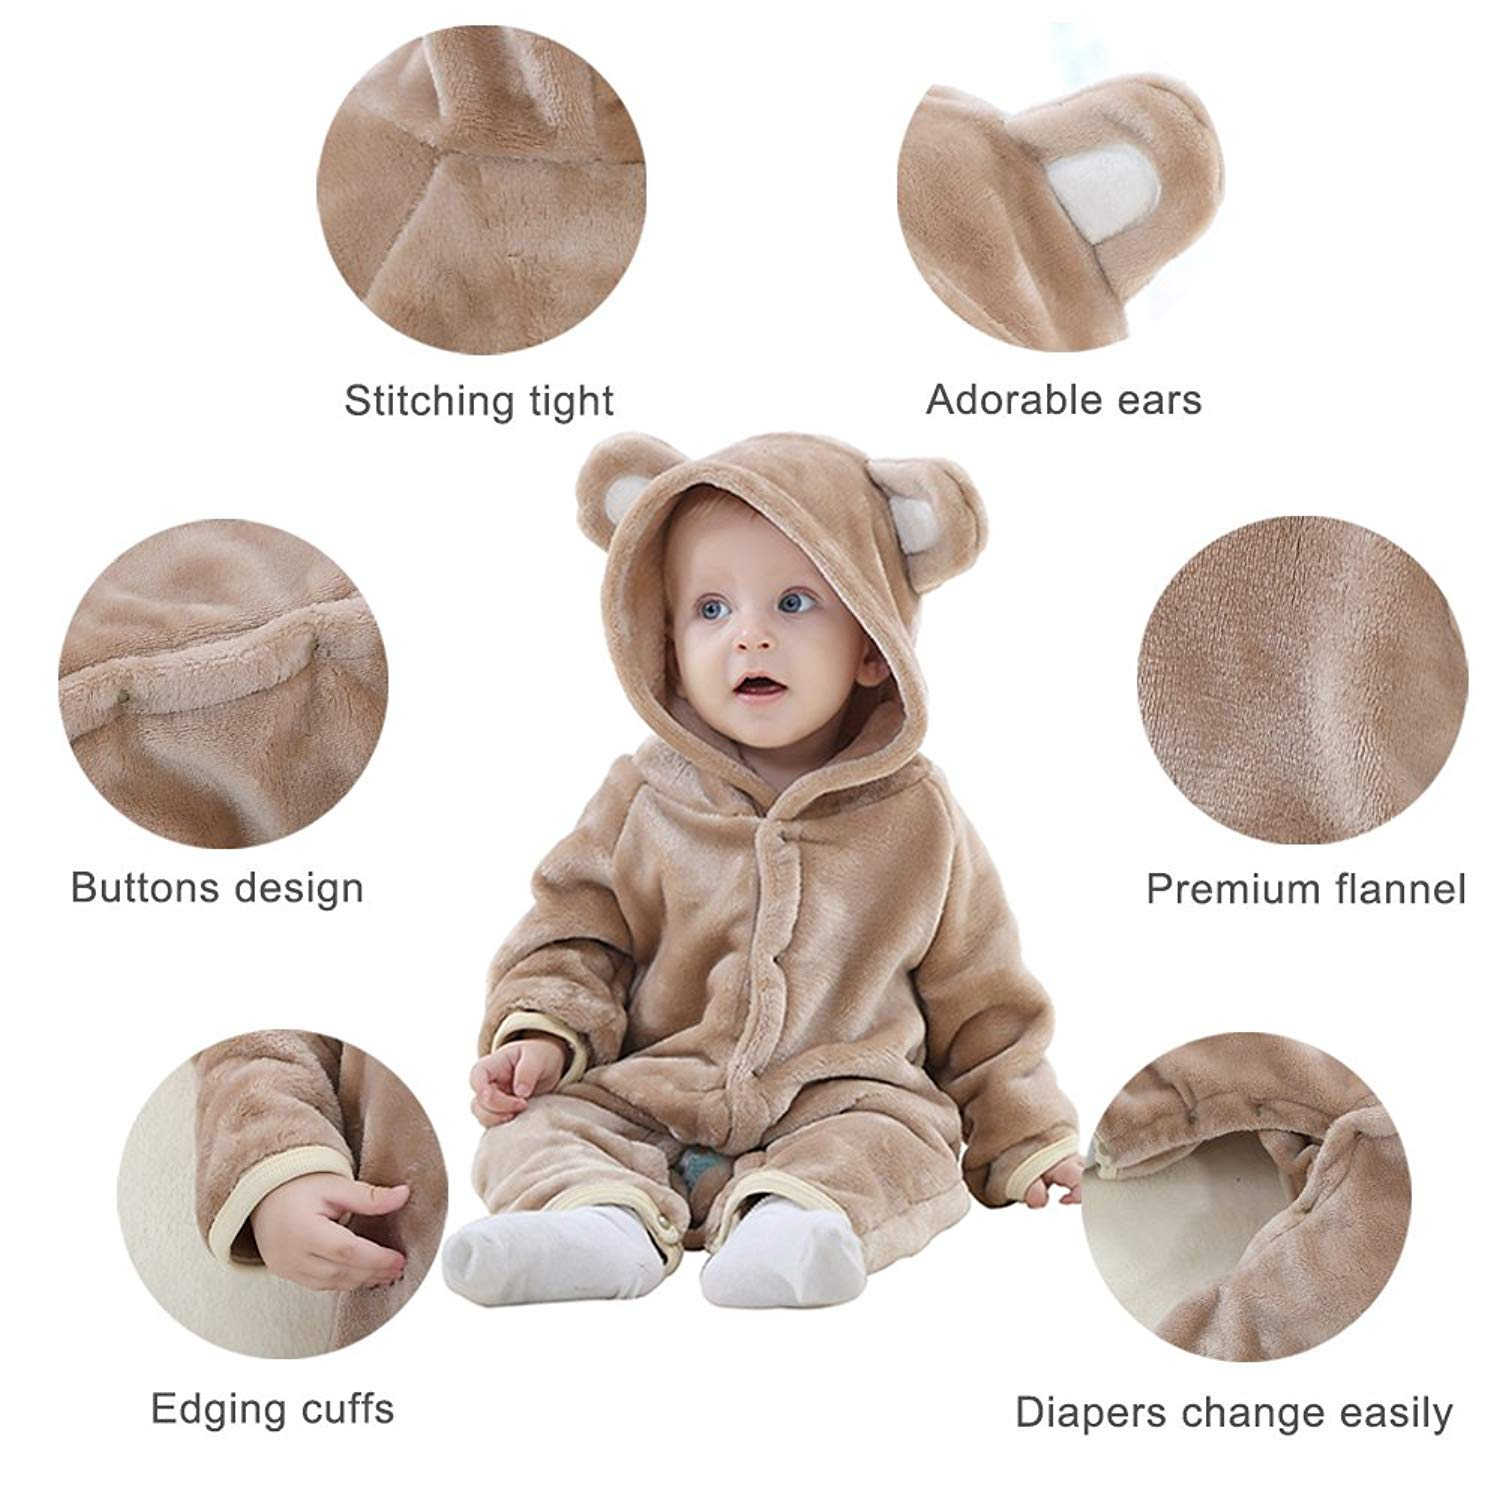 TSHSUN Baby Girls Boys Toddler Romper Bear Outfit Flannel Style Jumpsuit Autumn /& Winter Cosplay Clothes 13-18 Months, Brown